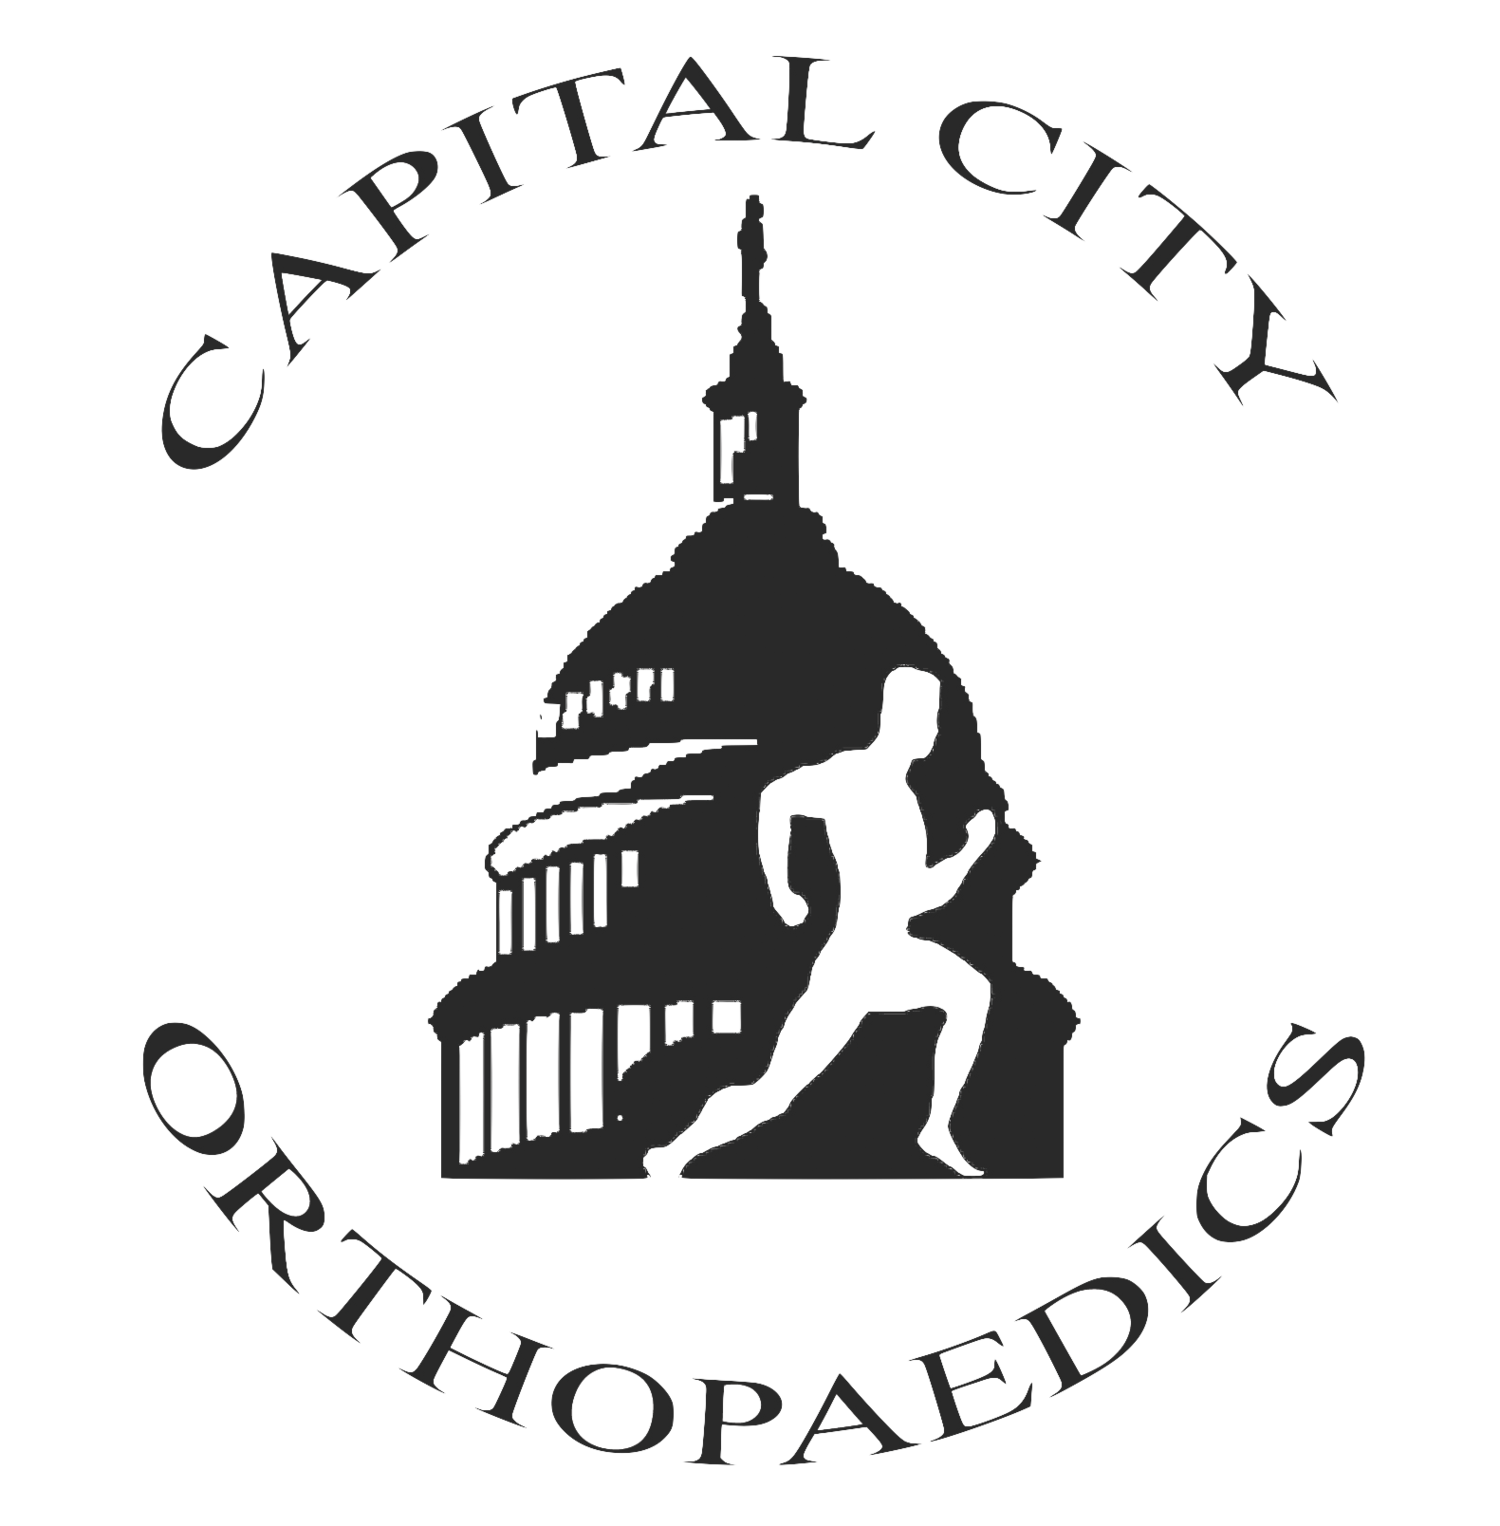 Knee clipart grand total. Our team capital city